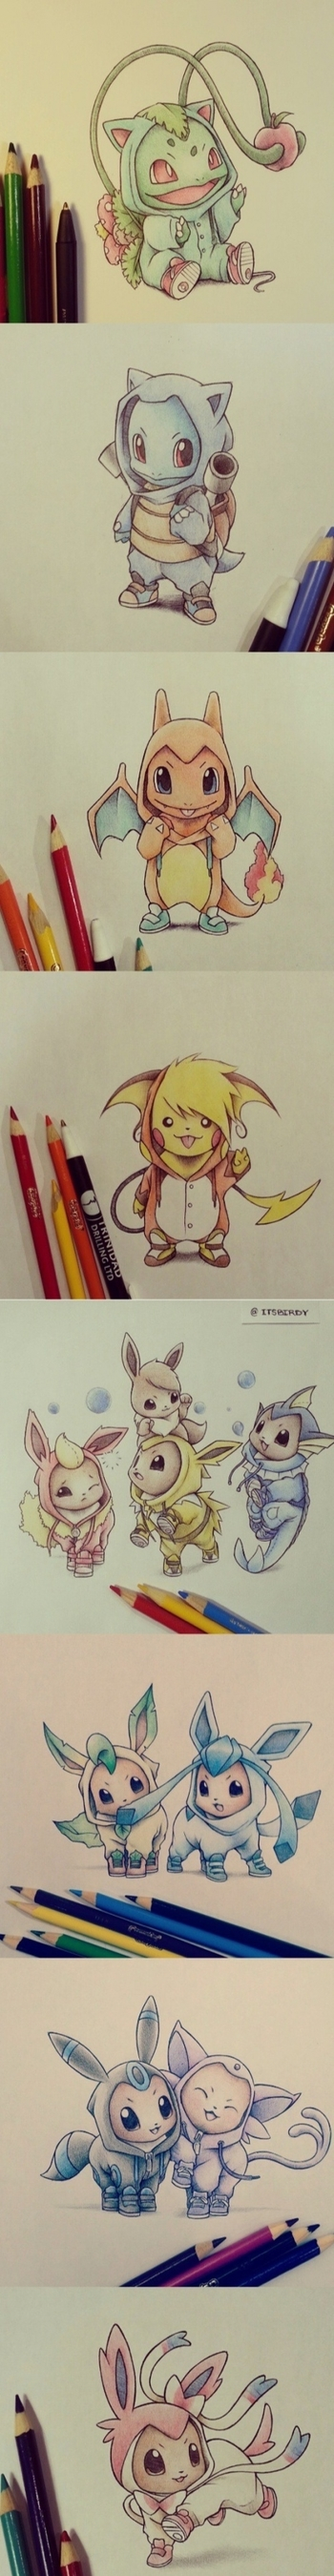 itsbirdy on Instagram--Pokemon in onsies of their evolved forms